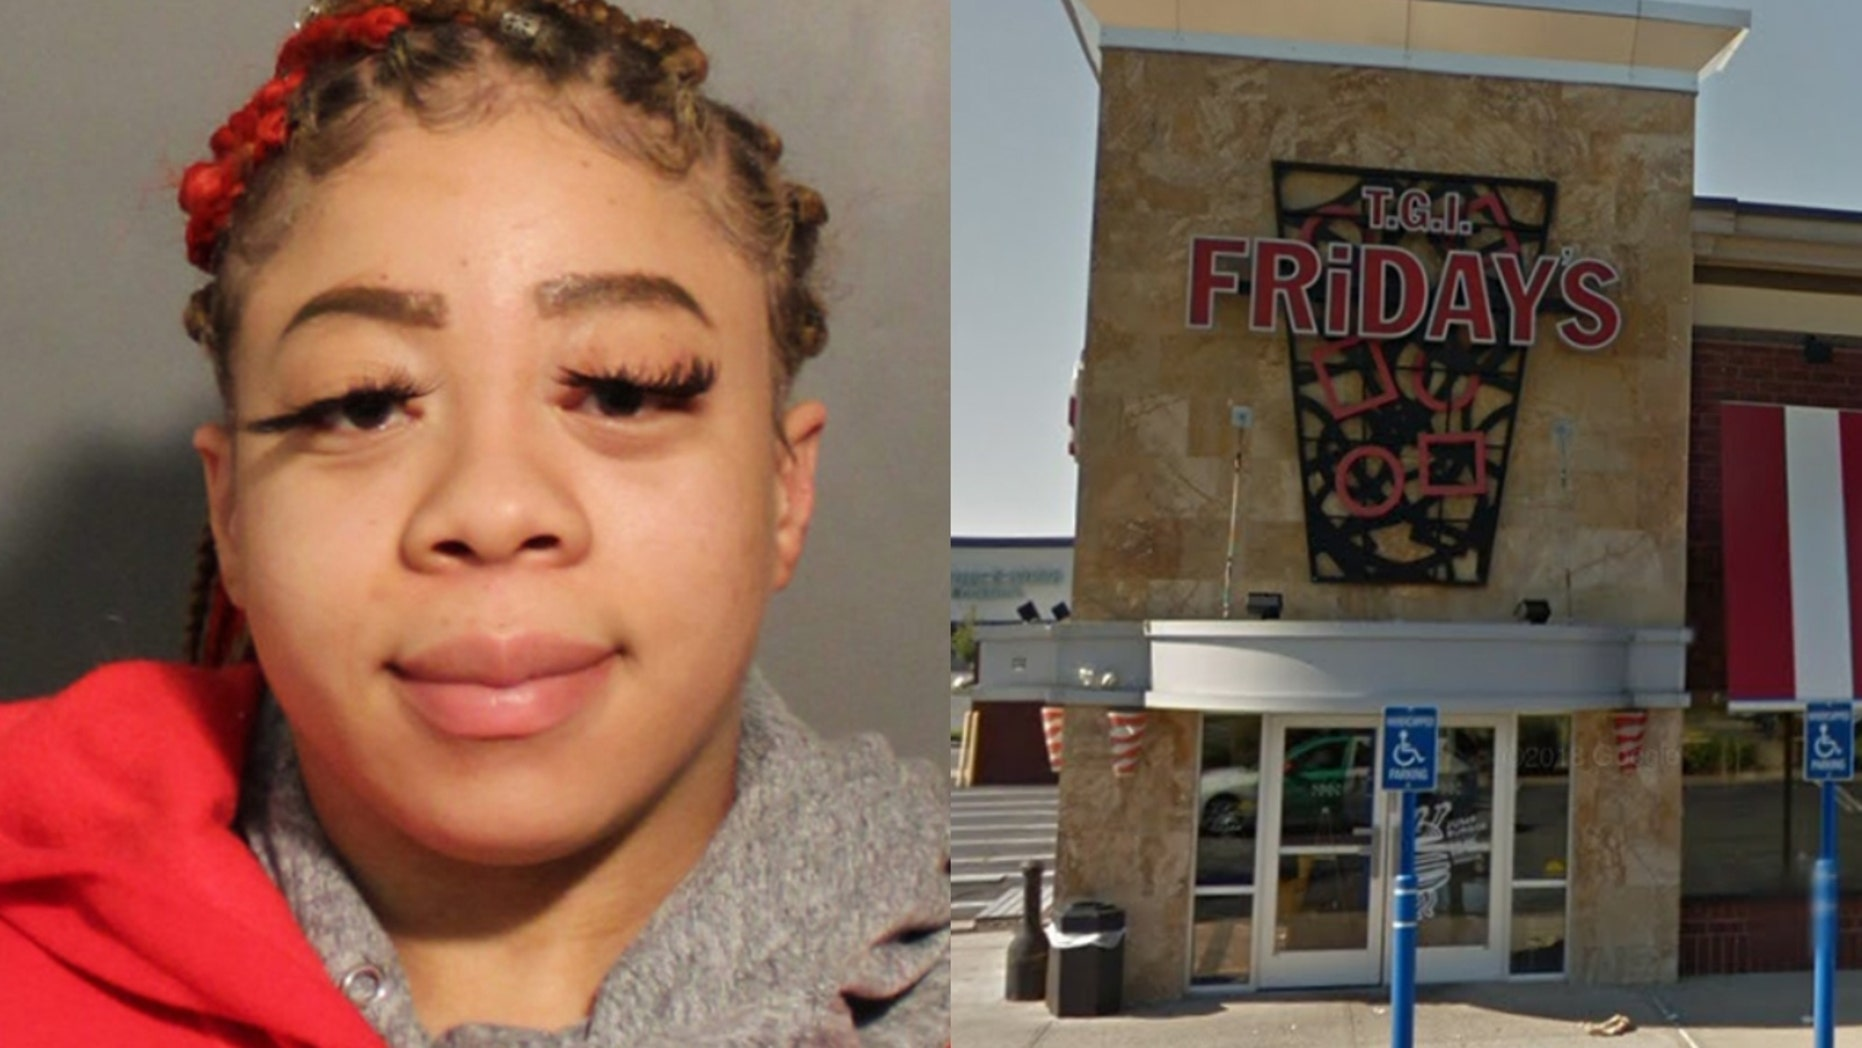 Westlake Legal Group Skylar-Williams-TGIF New York woman threatens to stab TGI Fridays worker over endless appetizers New York Post fox-news/travel/vacation-destinations/new-york-city fox-news/lifestyle fox-news/food-drink/food/fast-food fnc/food-drink fnc article 66888ee0-76de-5c64-b0ec-f9aed4faf8b7